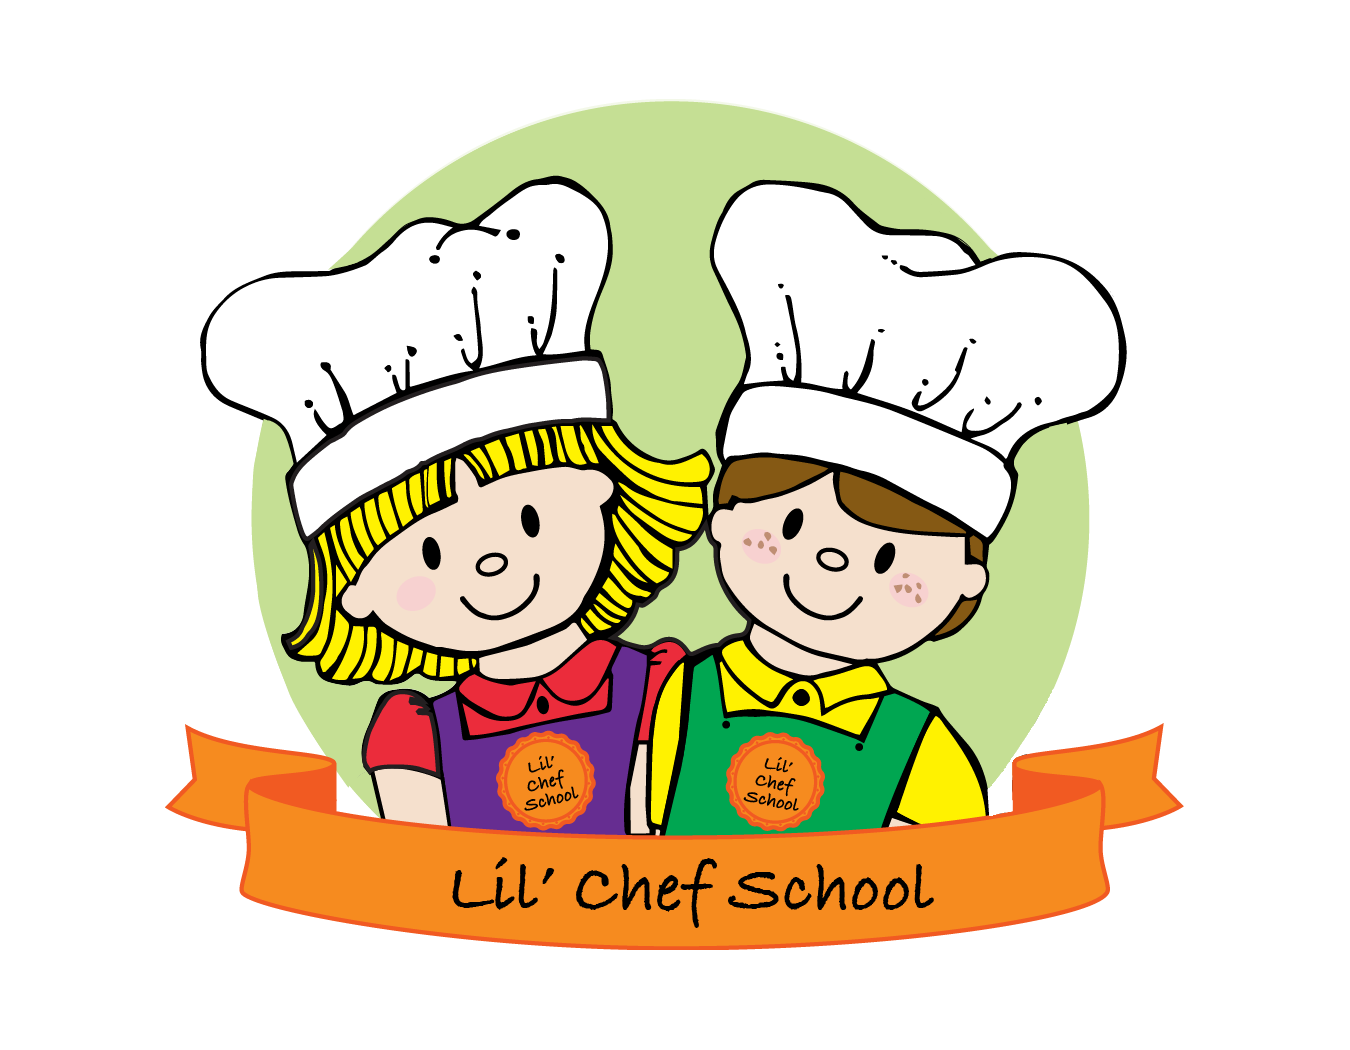 Kid chef png. Welcome to lil school